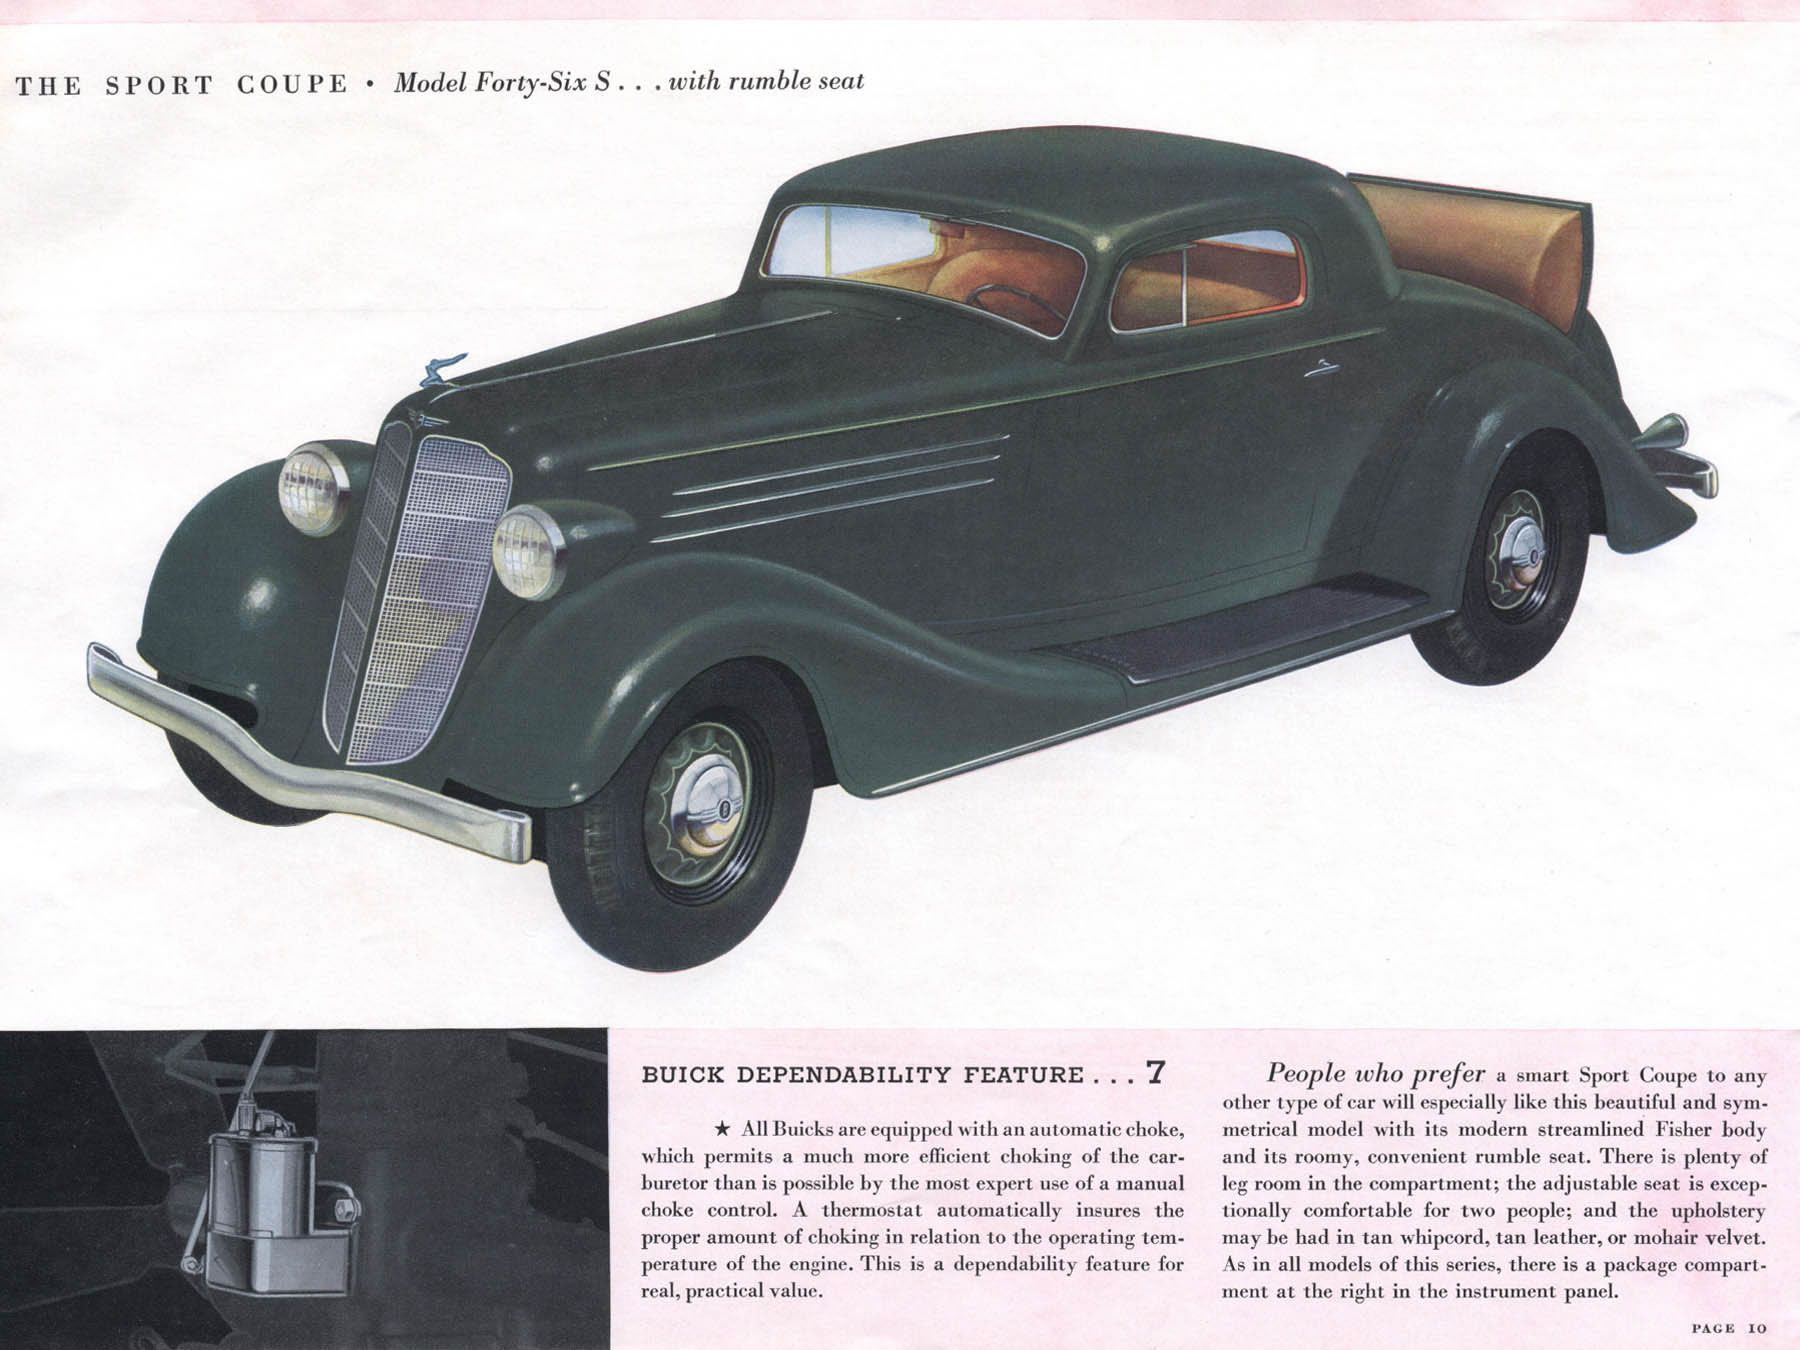 1935 buick model forty six s sport coupe